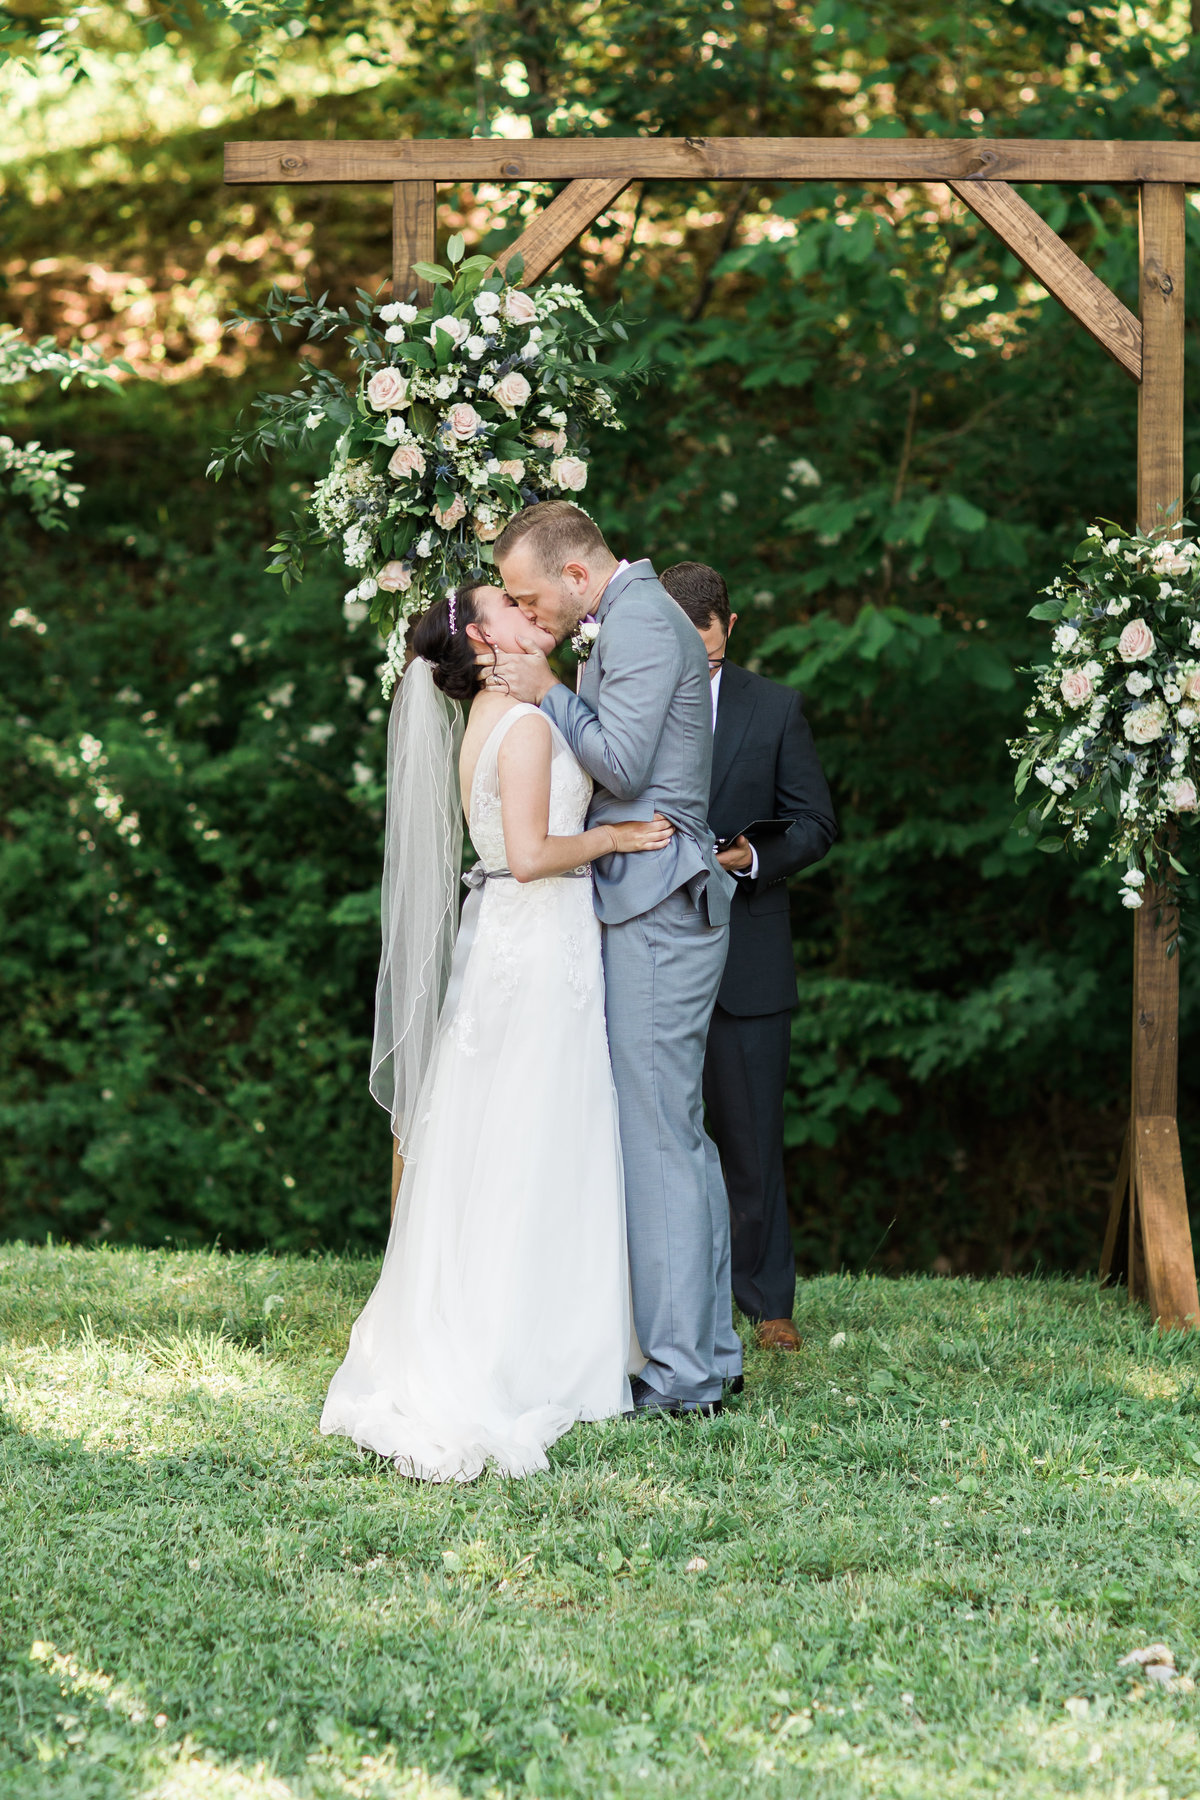 Danielle-Defayette-Photography-Daras-Garden-Knoxville-Wedding-249